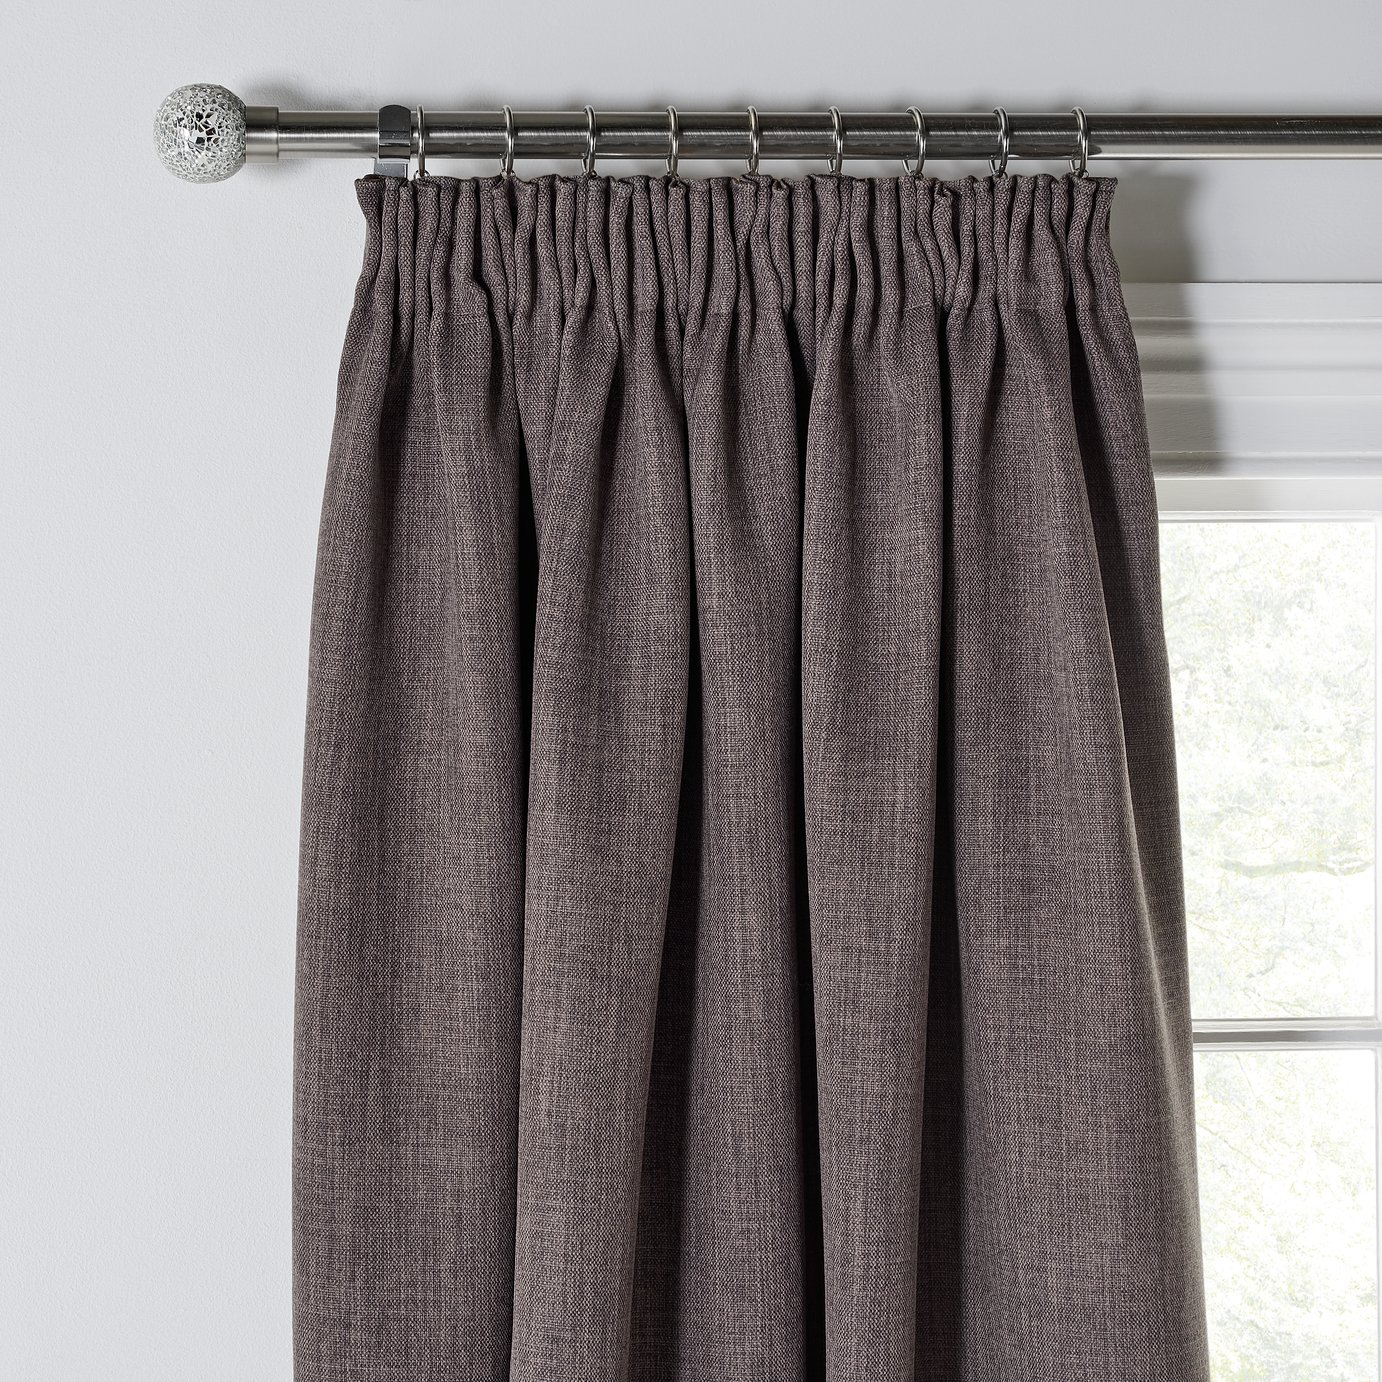 Argos Home Twilight Pencil Pleat Curtains - 168x228cm